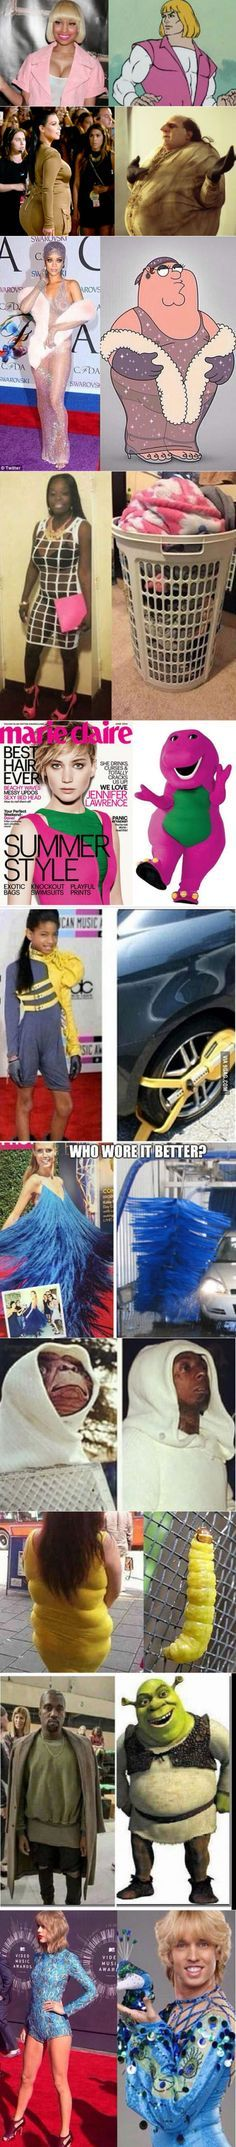 Who wore it better?qqa